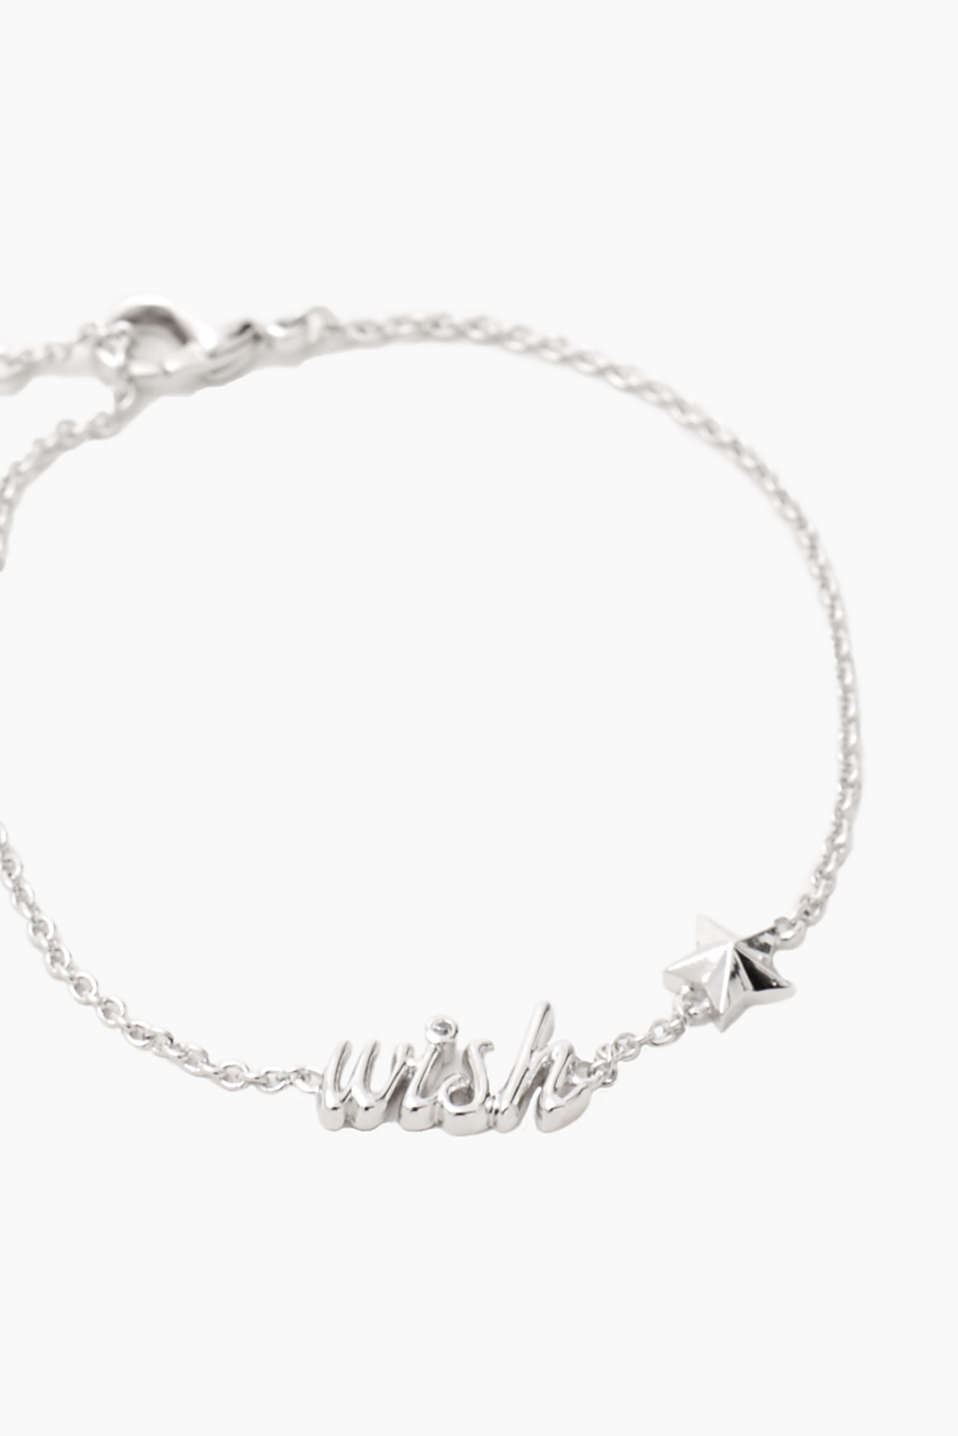 Metal bracelet with a wishing star